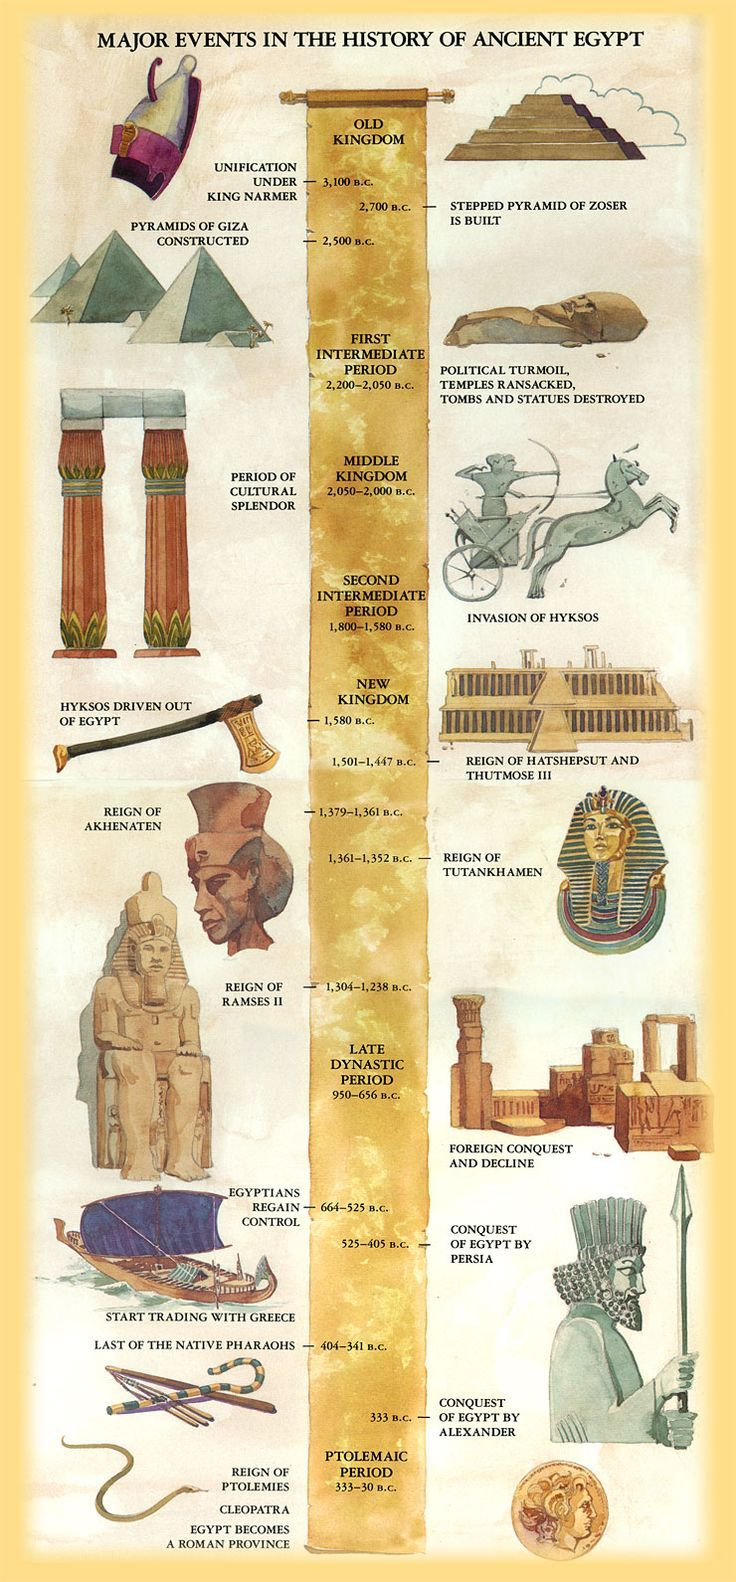 Major Events in the history of Ancient Egypt.For more information please visit us at: www.windandwave-eg.com and contact us at: info@windandwave-eg.com